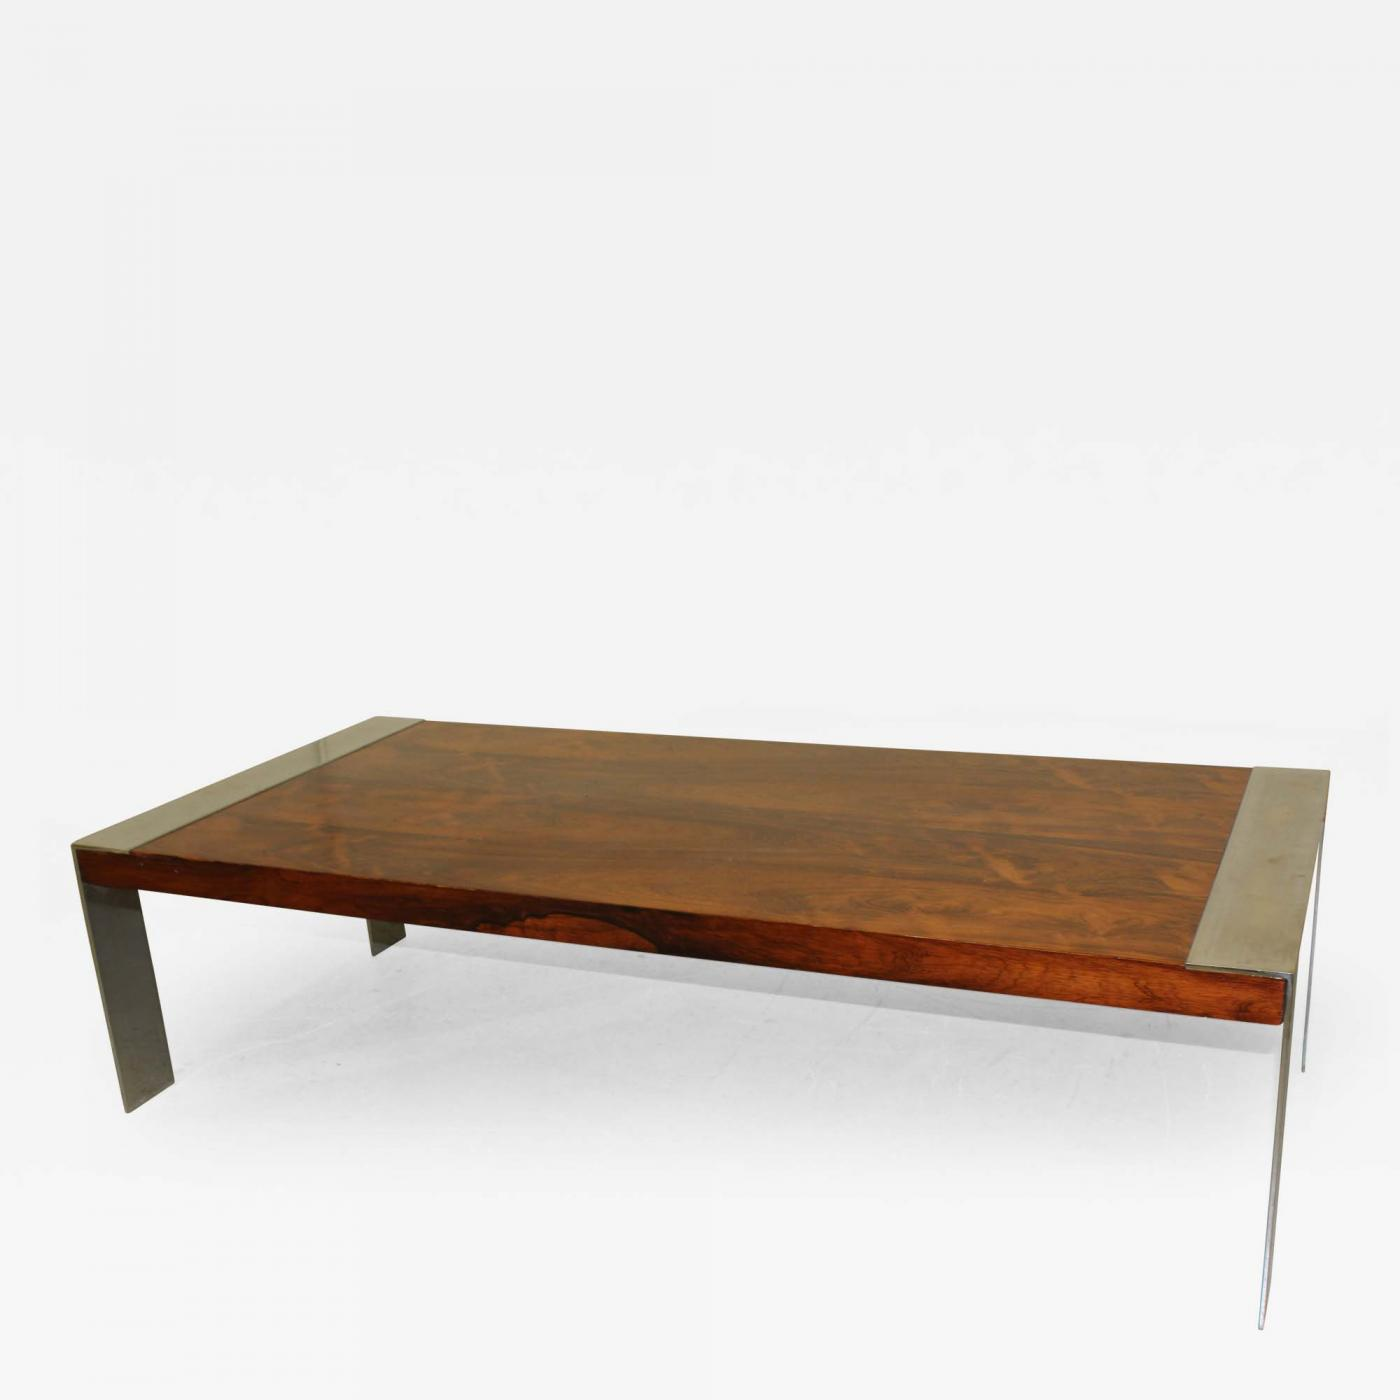 Milo baughman mid century modern coffee table for Mid century modern coffee table